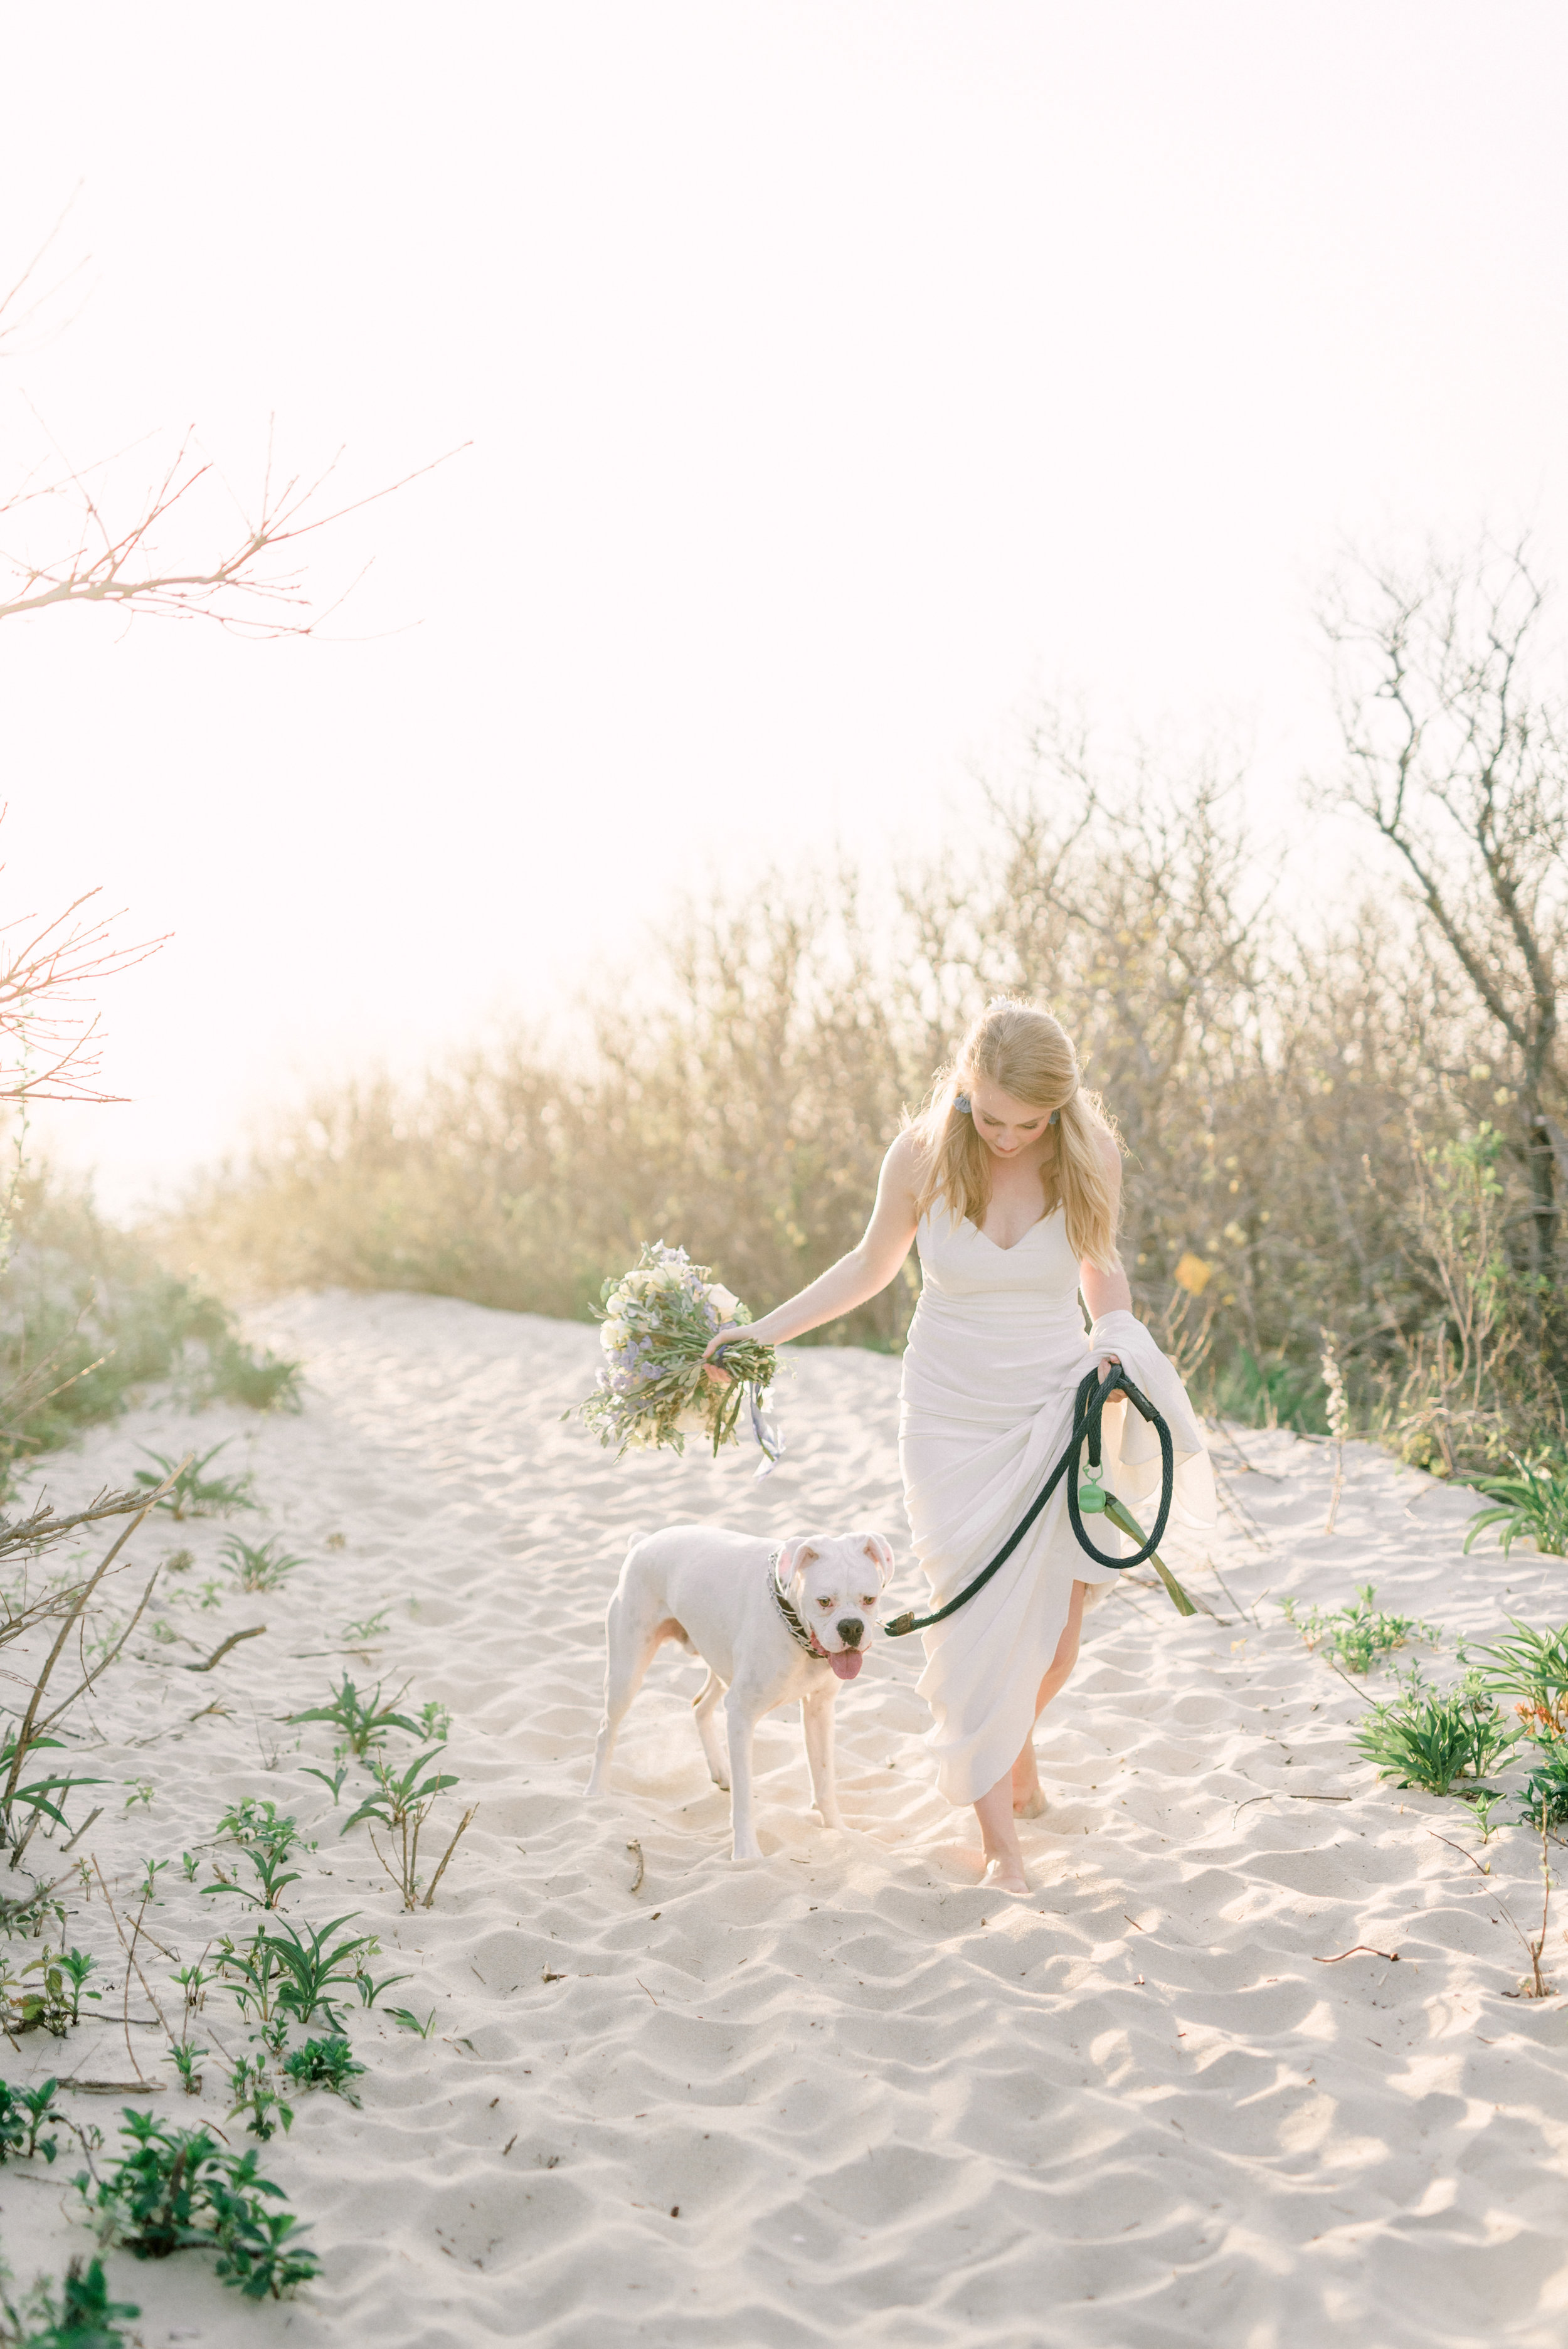 haley-richter-photography-clover-event-co-cape-may-new-jersey-wedding-elopement-at-congress-hall-sea-glass-inspired-063.jpg